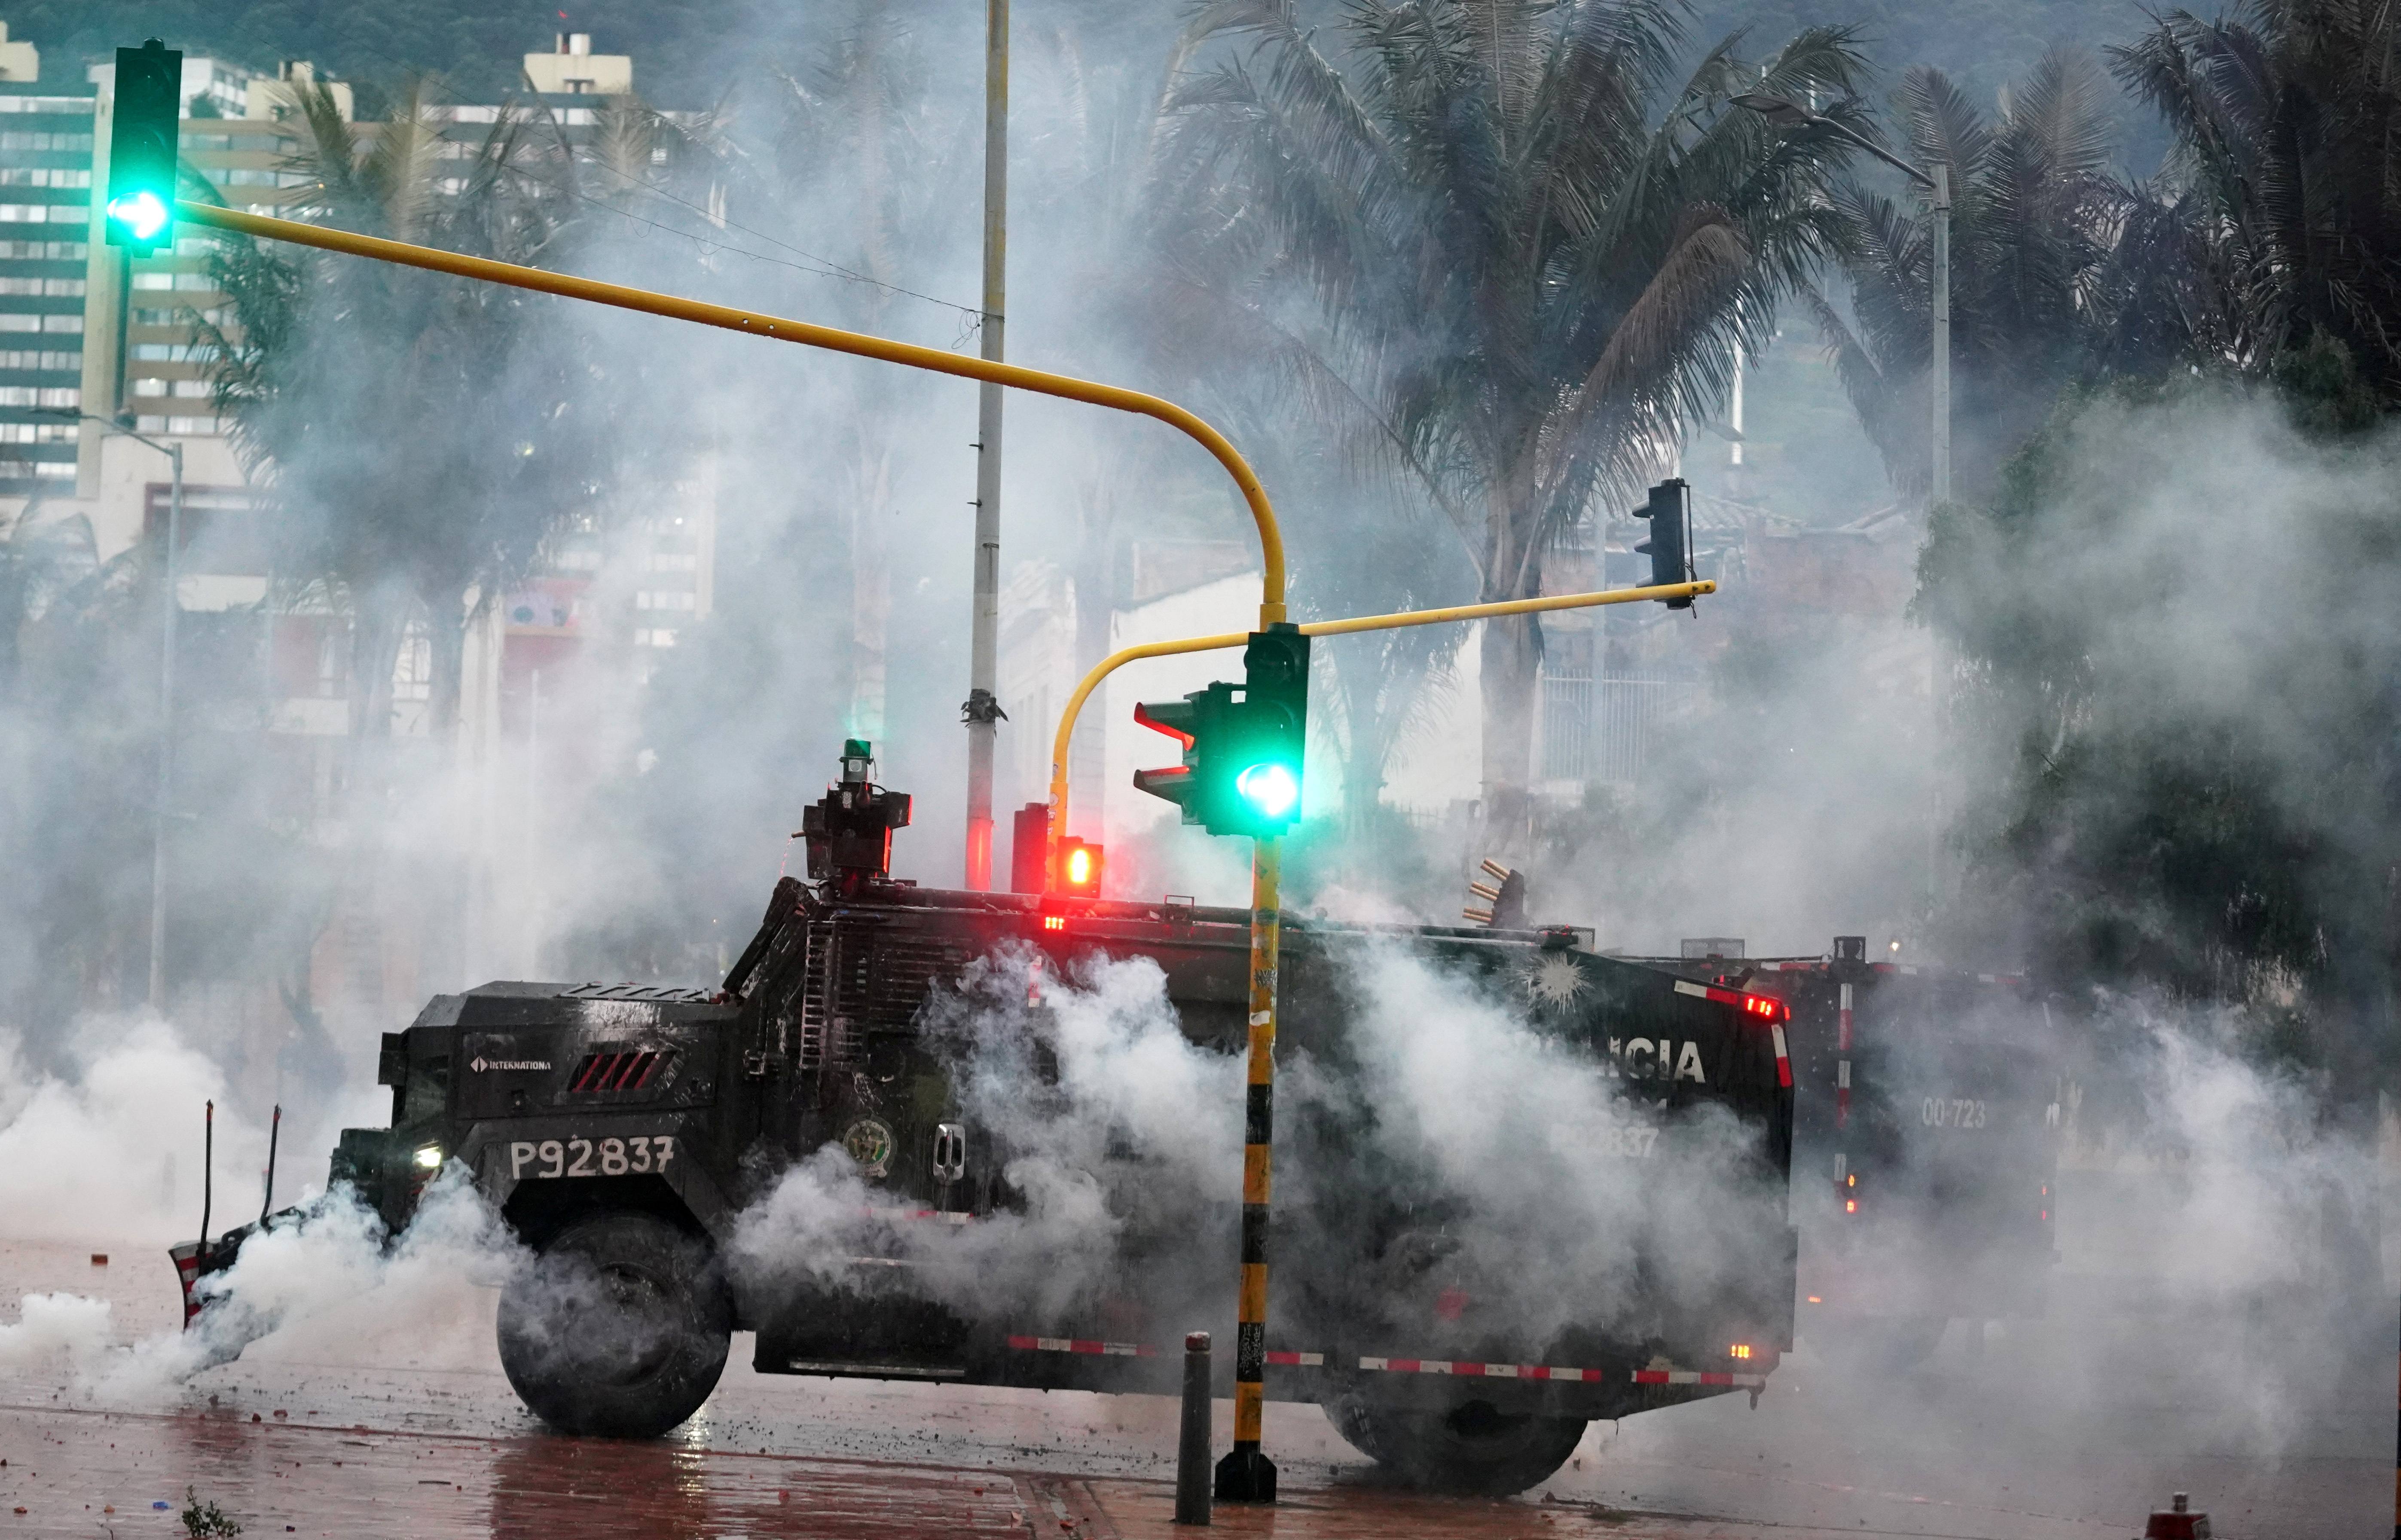 A police armored vehicle is pictured during a protest against poverty and police violence in Bogota, Colombia May 5, 2021.    REUTERS/Nathalia Angarita